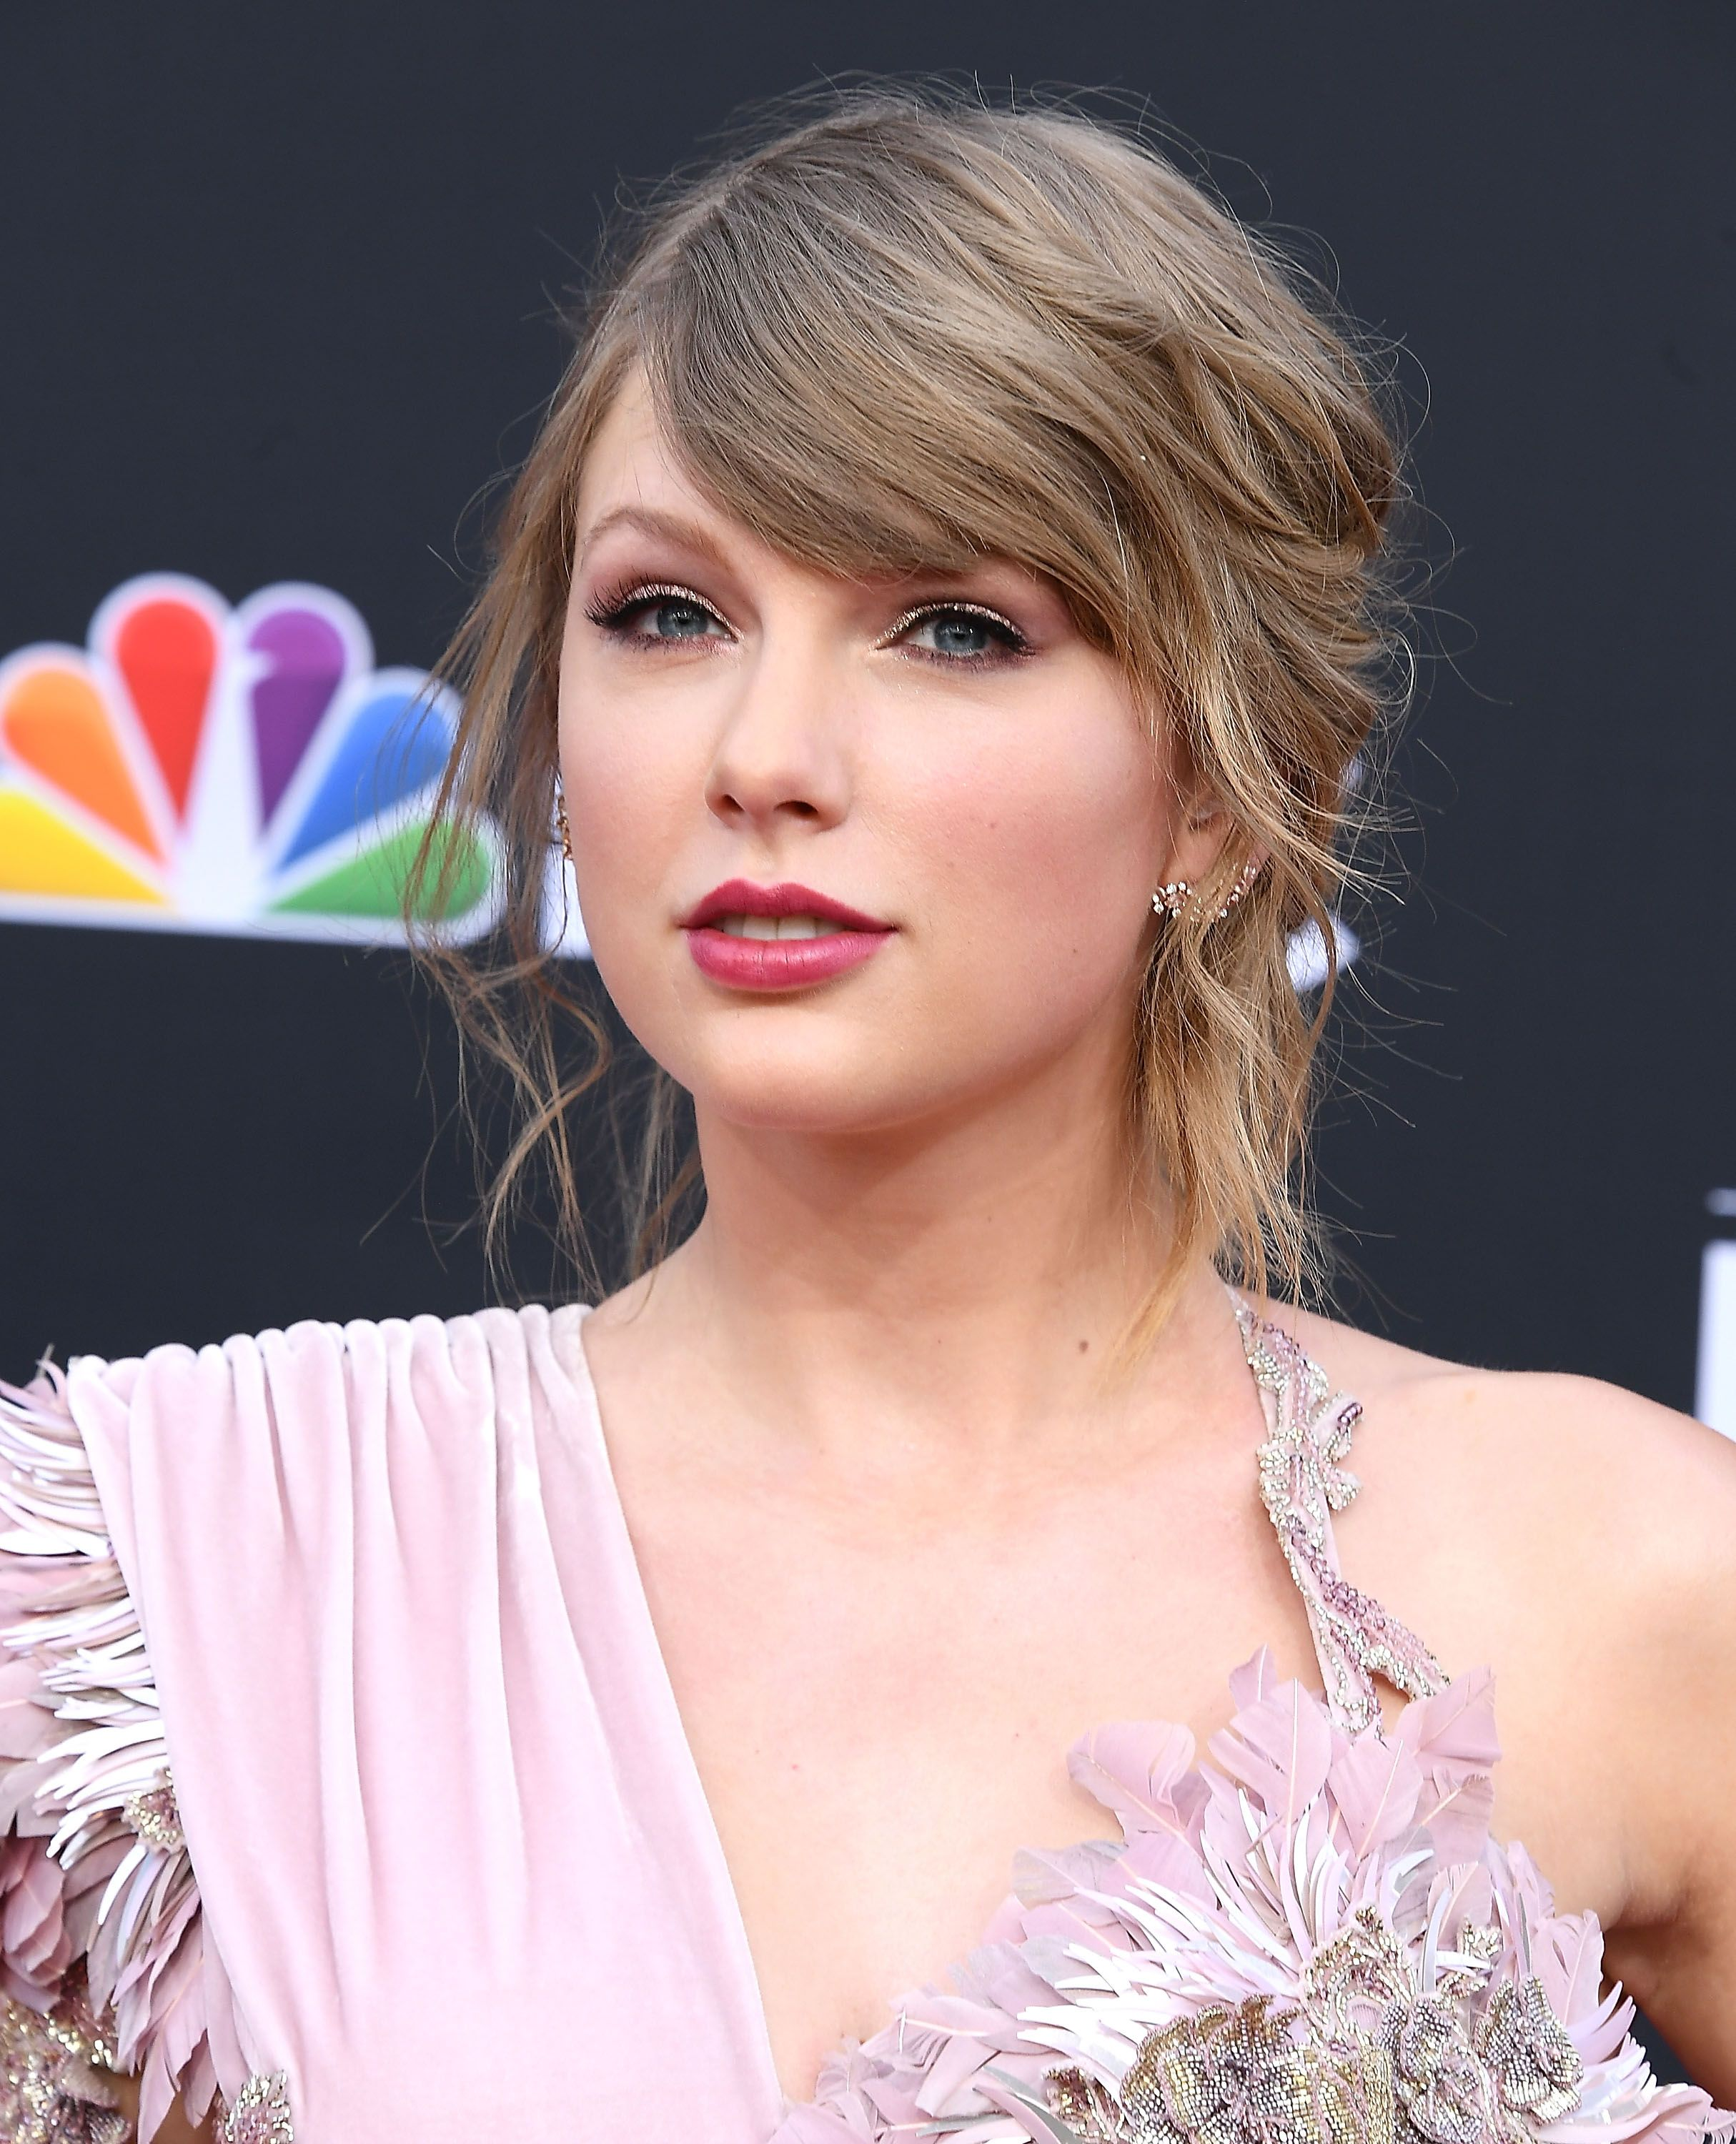 Taylor Swift Hairstyles - Taylor Swift\'s Curly, Straight, Short ...